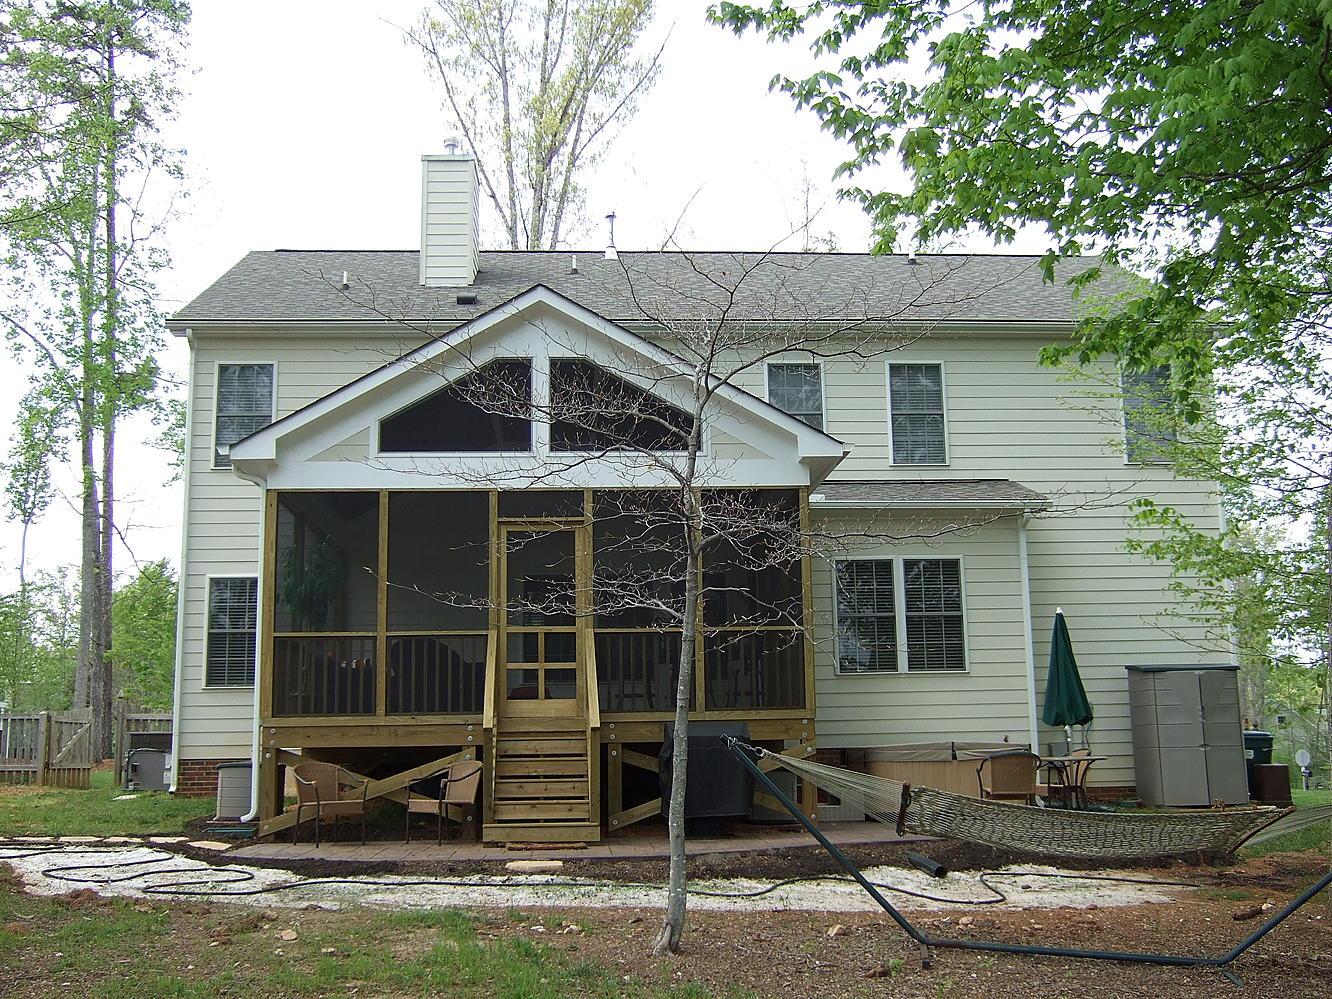 Stamped Concrete Screened Porches : Chad d collins s album a screen porch and stamped